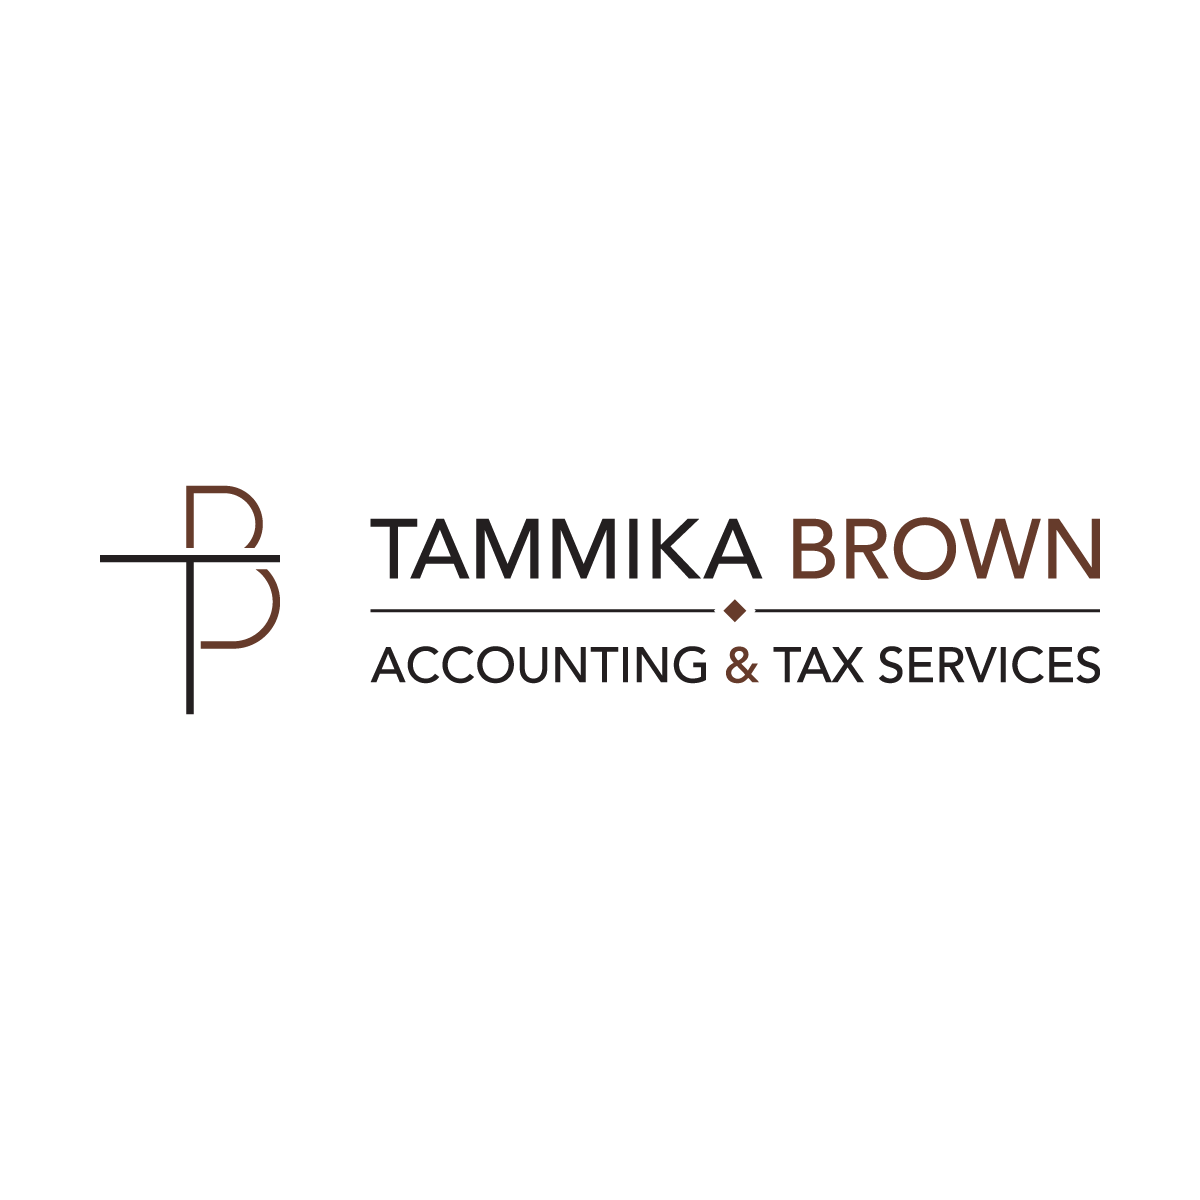 About  Tammika Brown Accounting & Tax Services